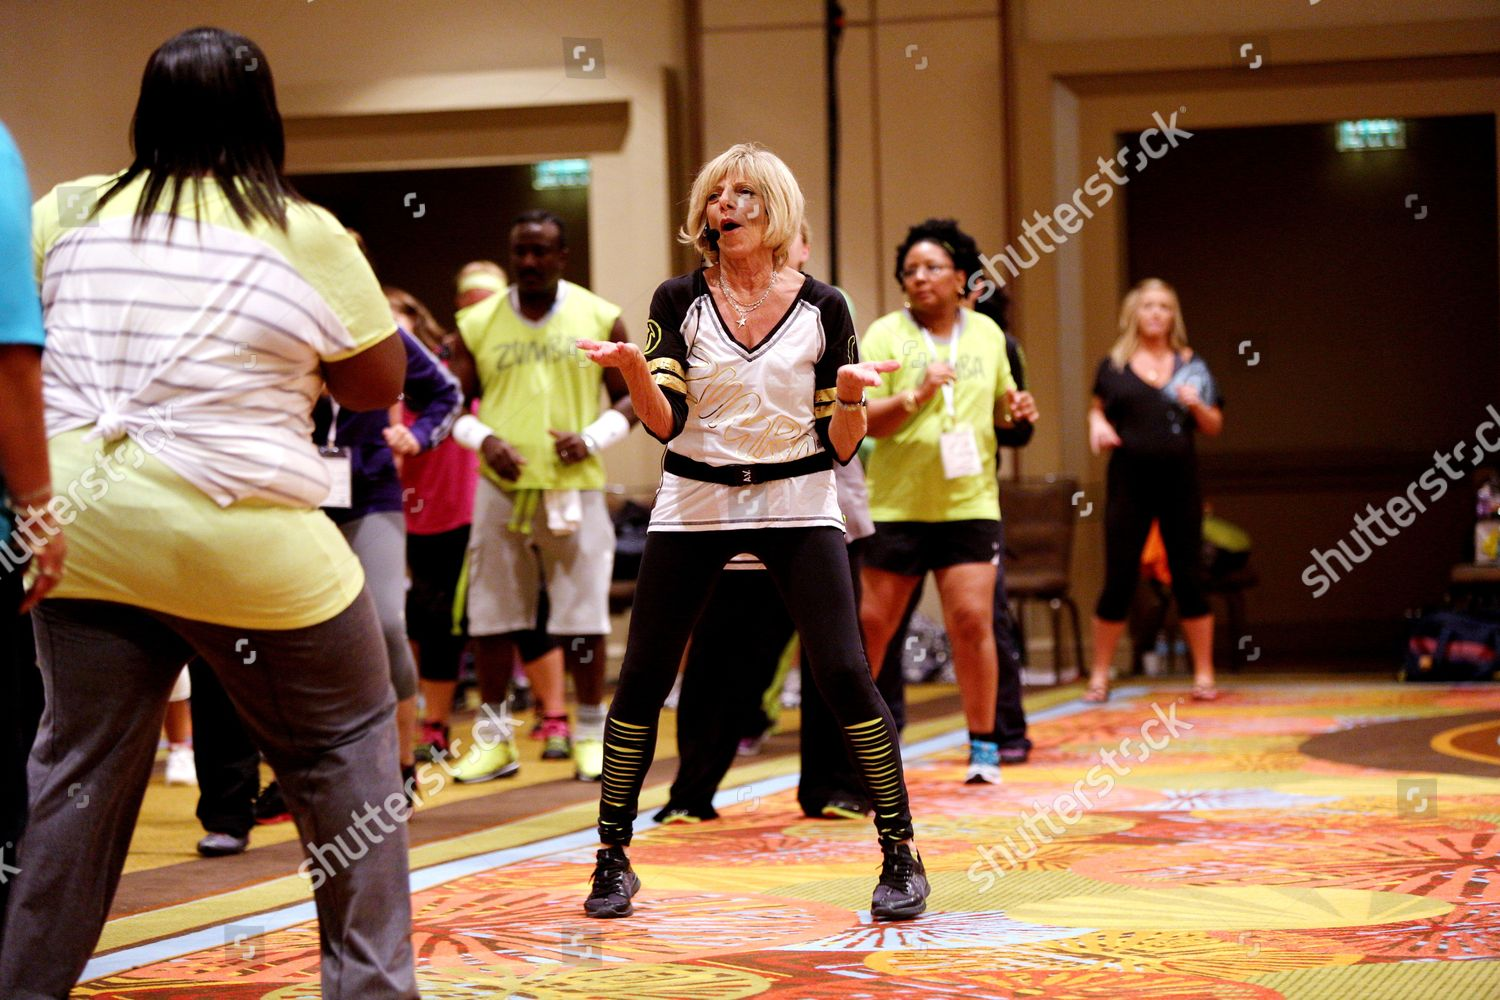 Sex at zumba convention